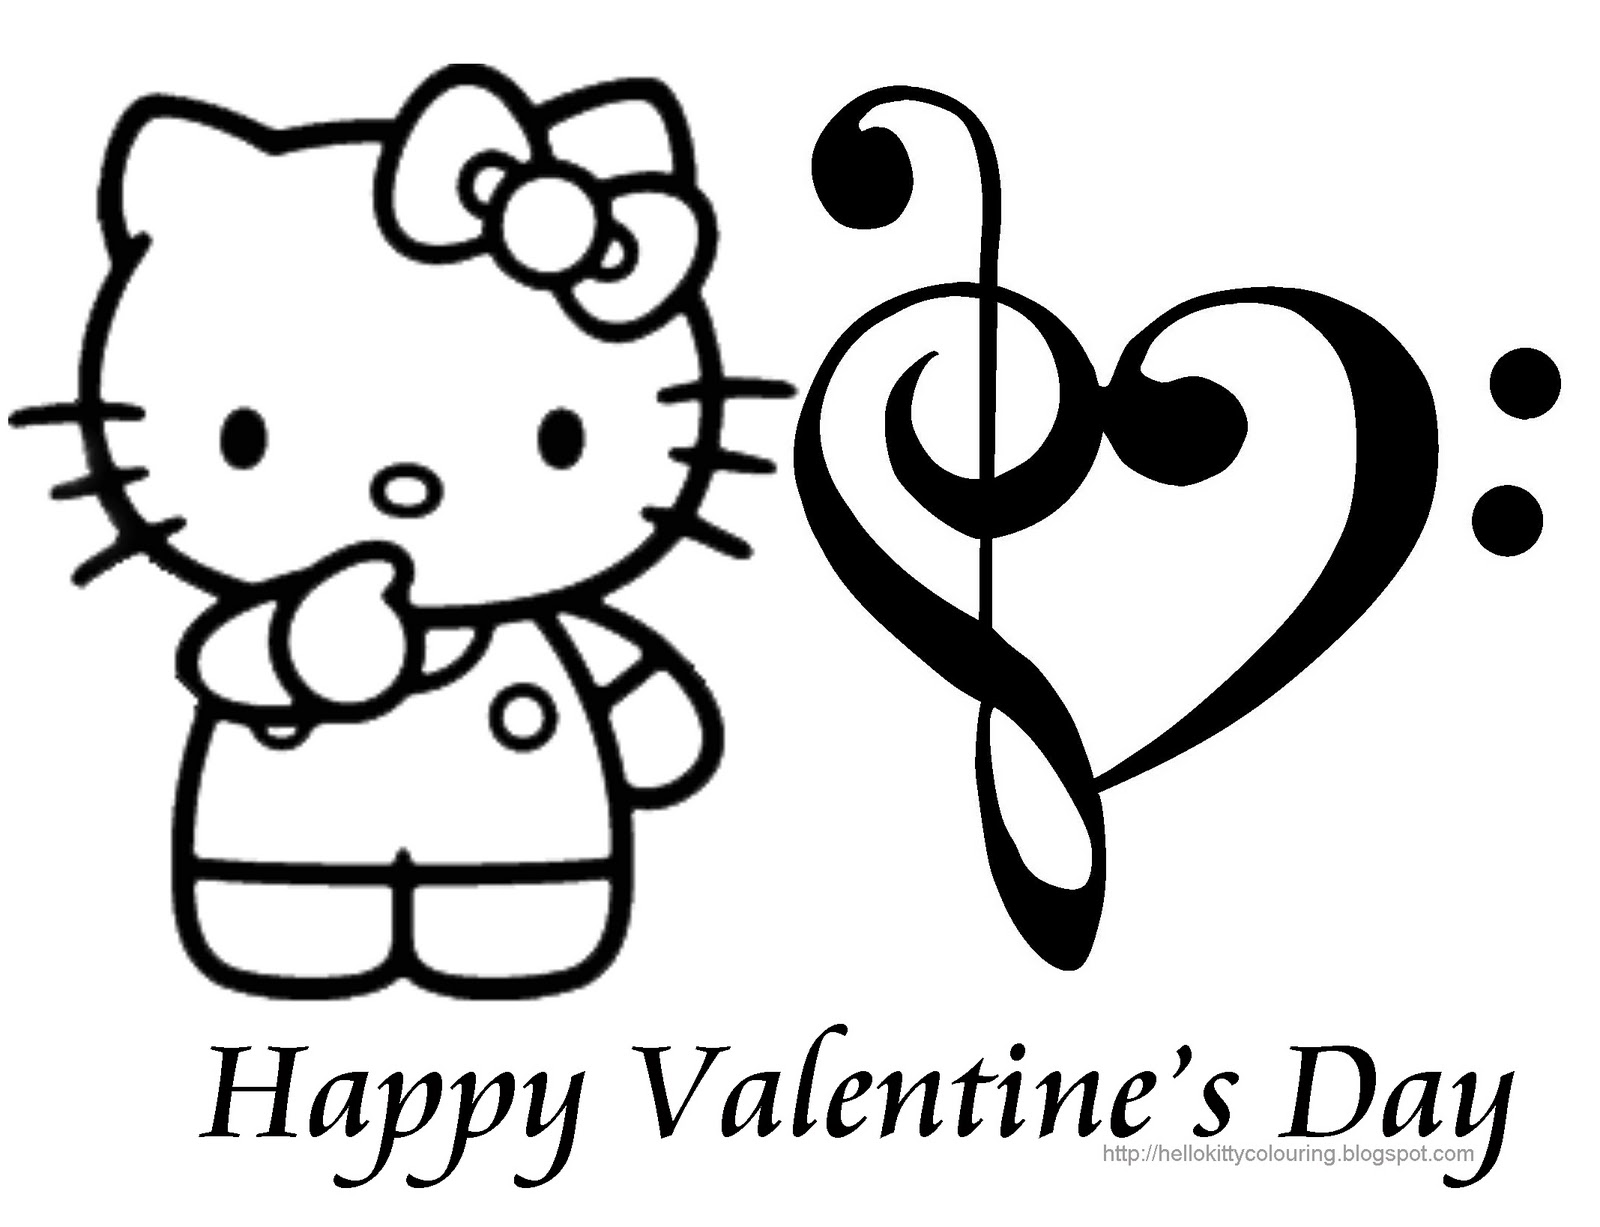 hello kitty valentines day coloring pages hello kitty valentine coloring pages coloring home day coloring pages hello valentines kitty